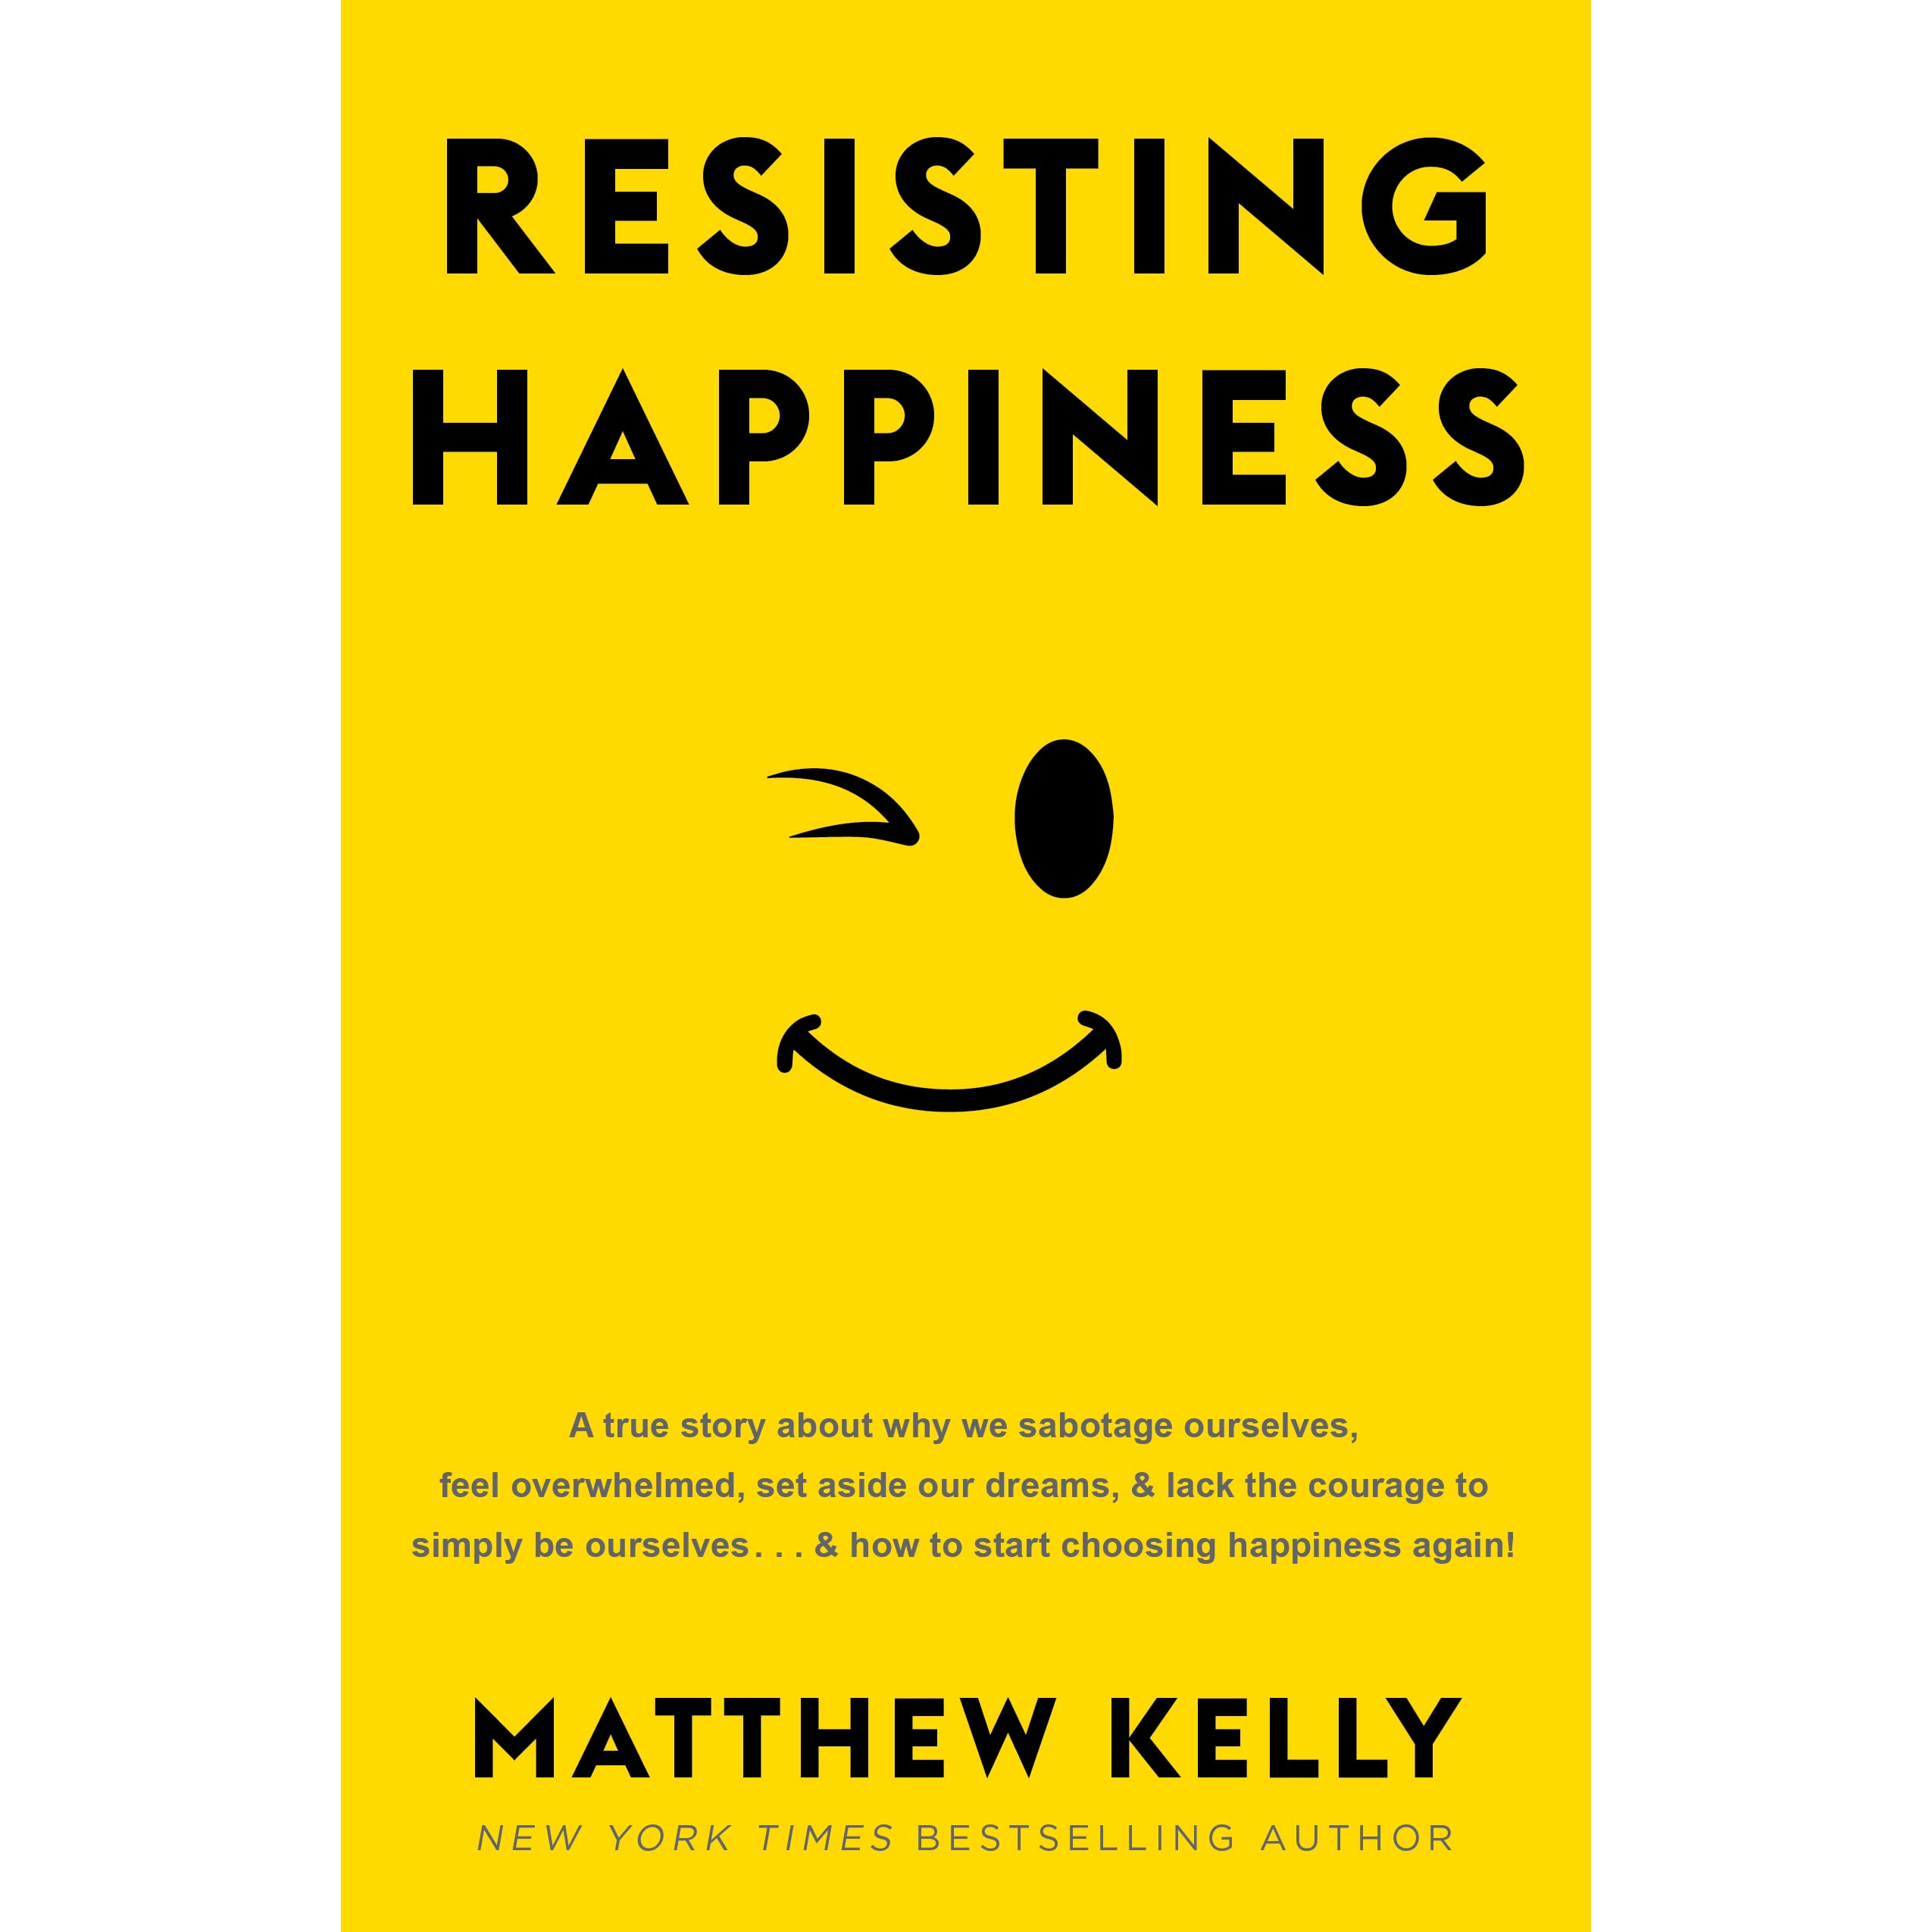 Resisting happiness book